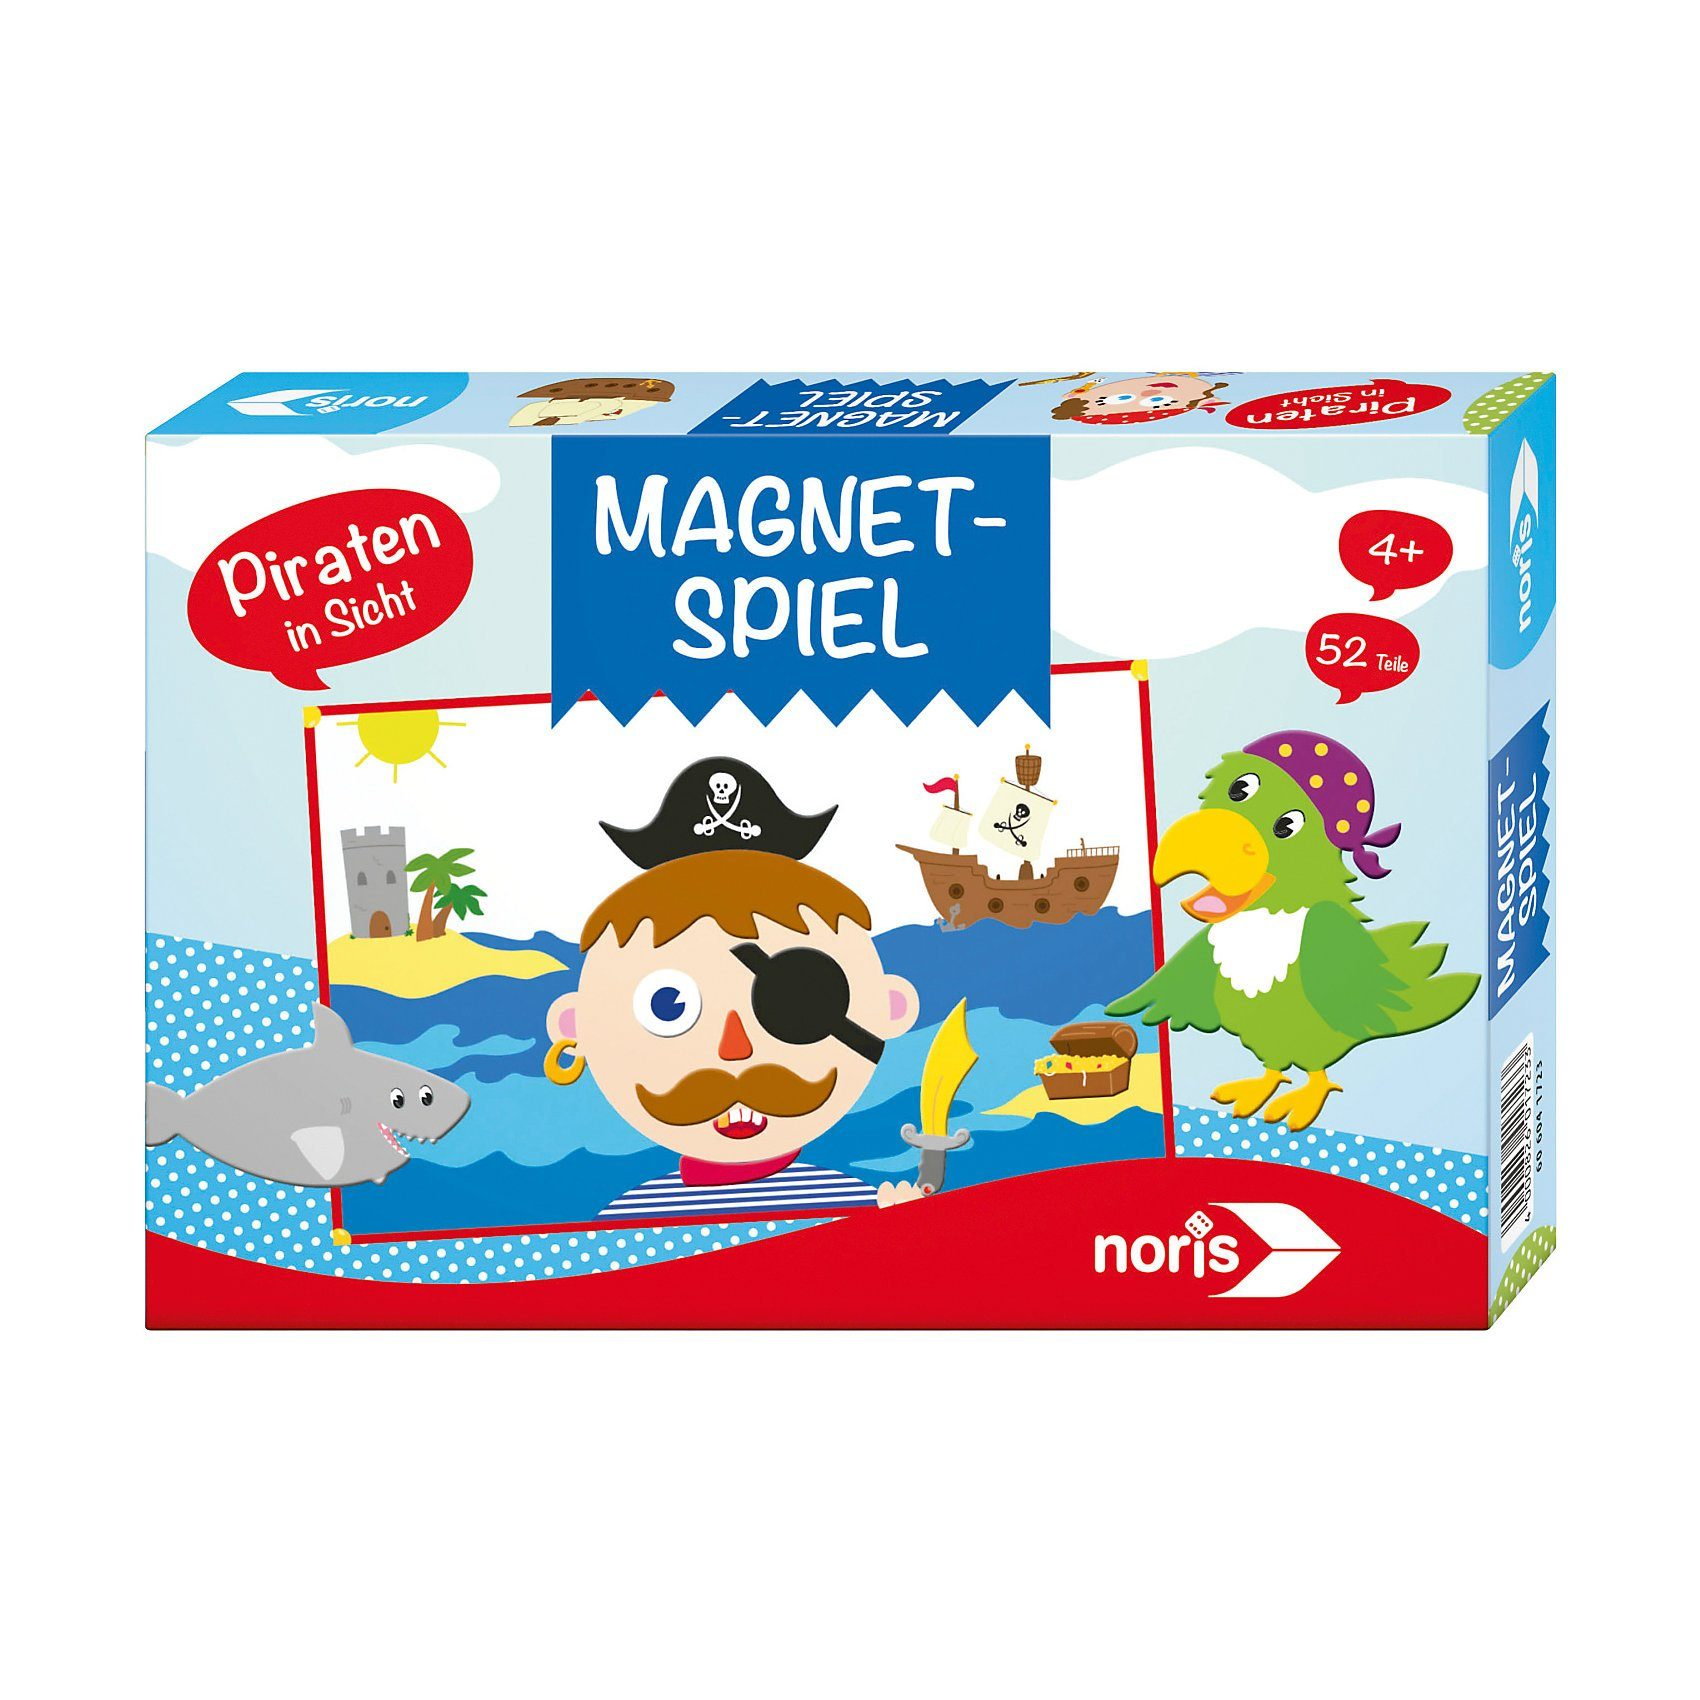 Noris Magnetspiel - Piraten in Sicht